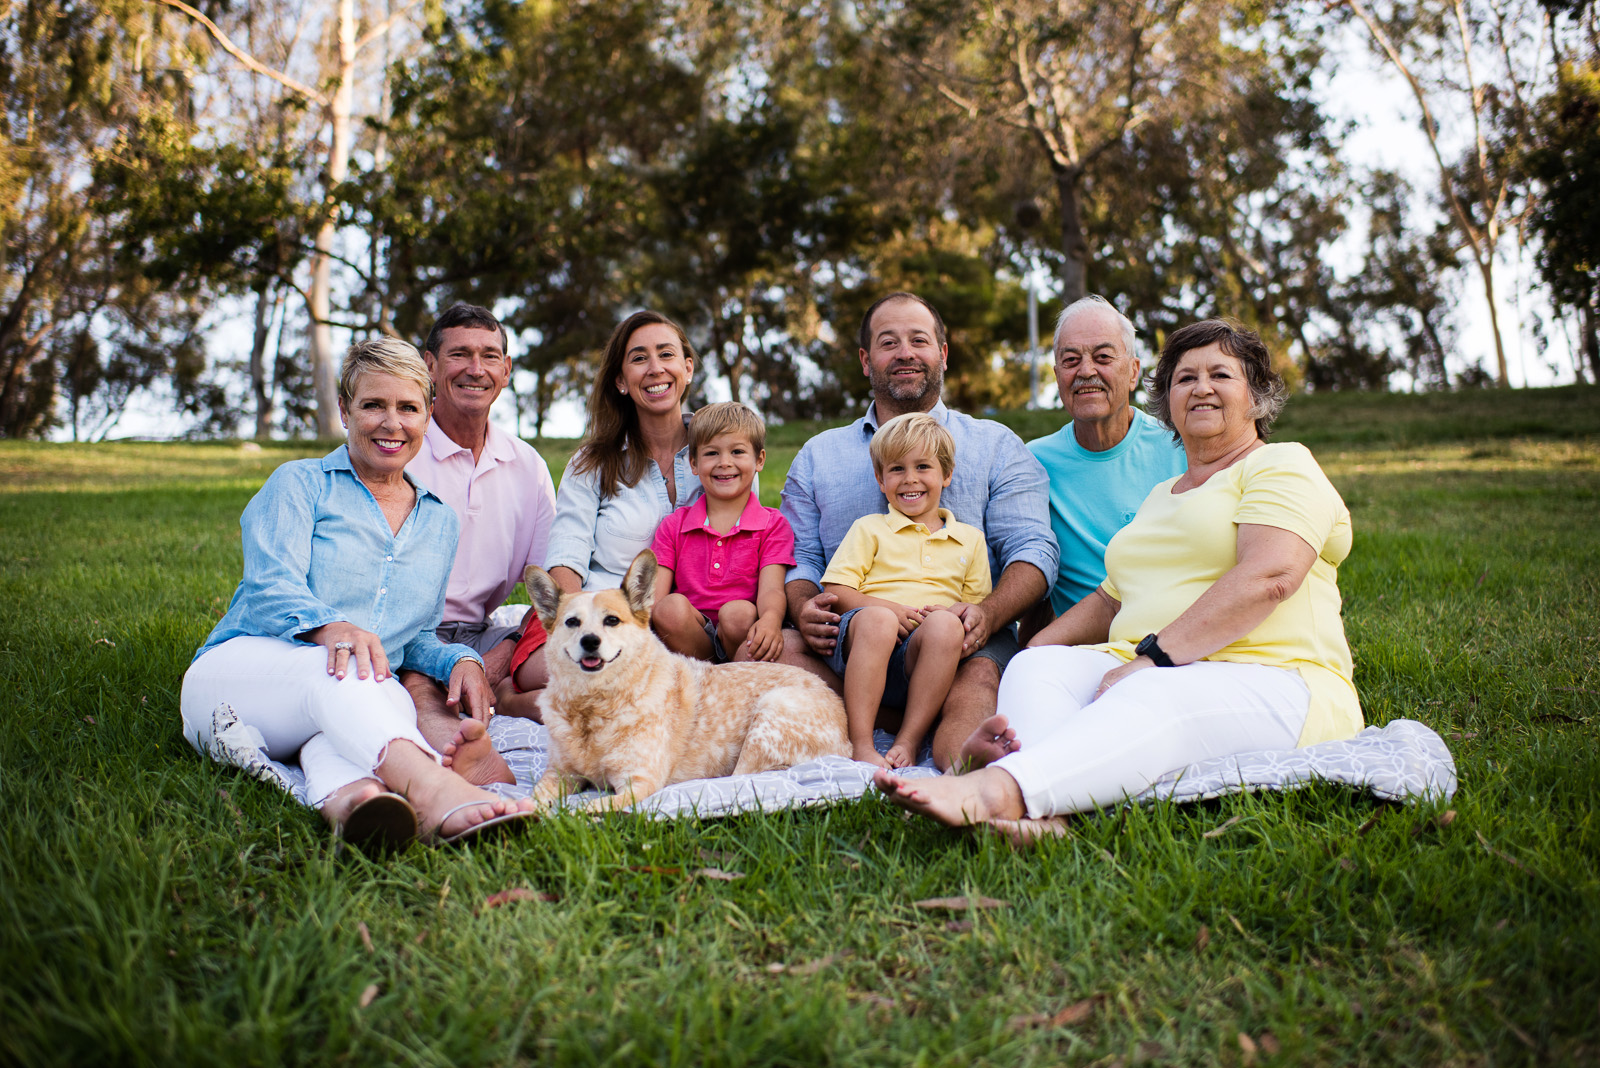 Reunion Family Session - 8 or more people, 60 minutes, 50 photo gallery, All photographs in gallery as a digital download — $800